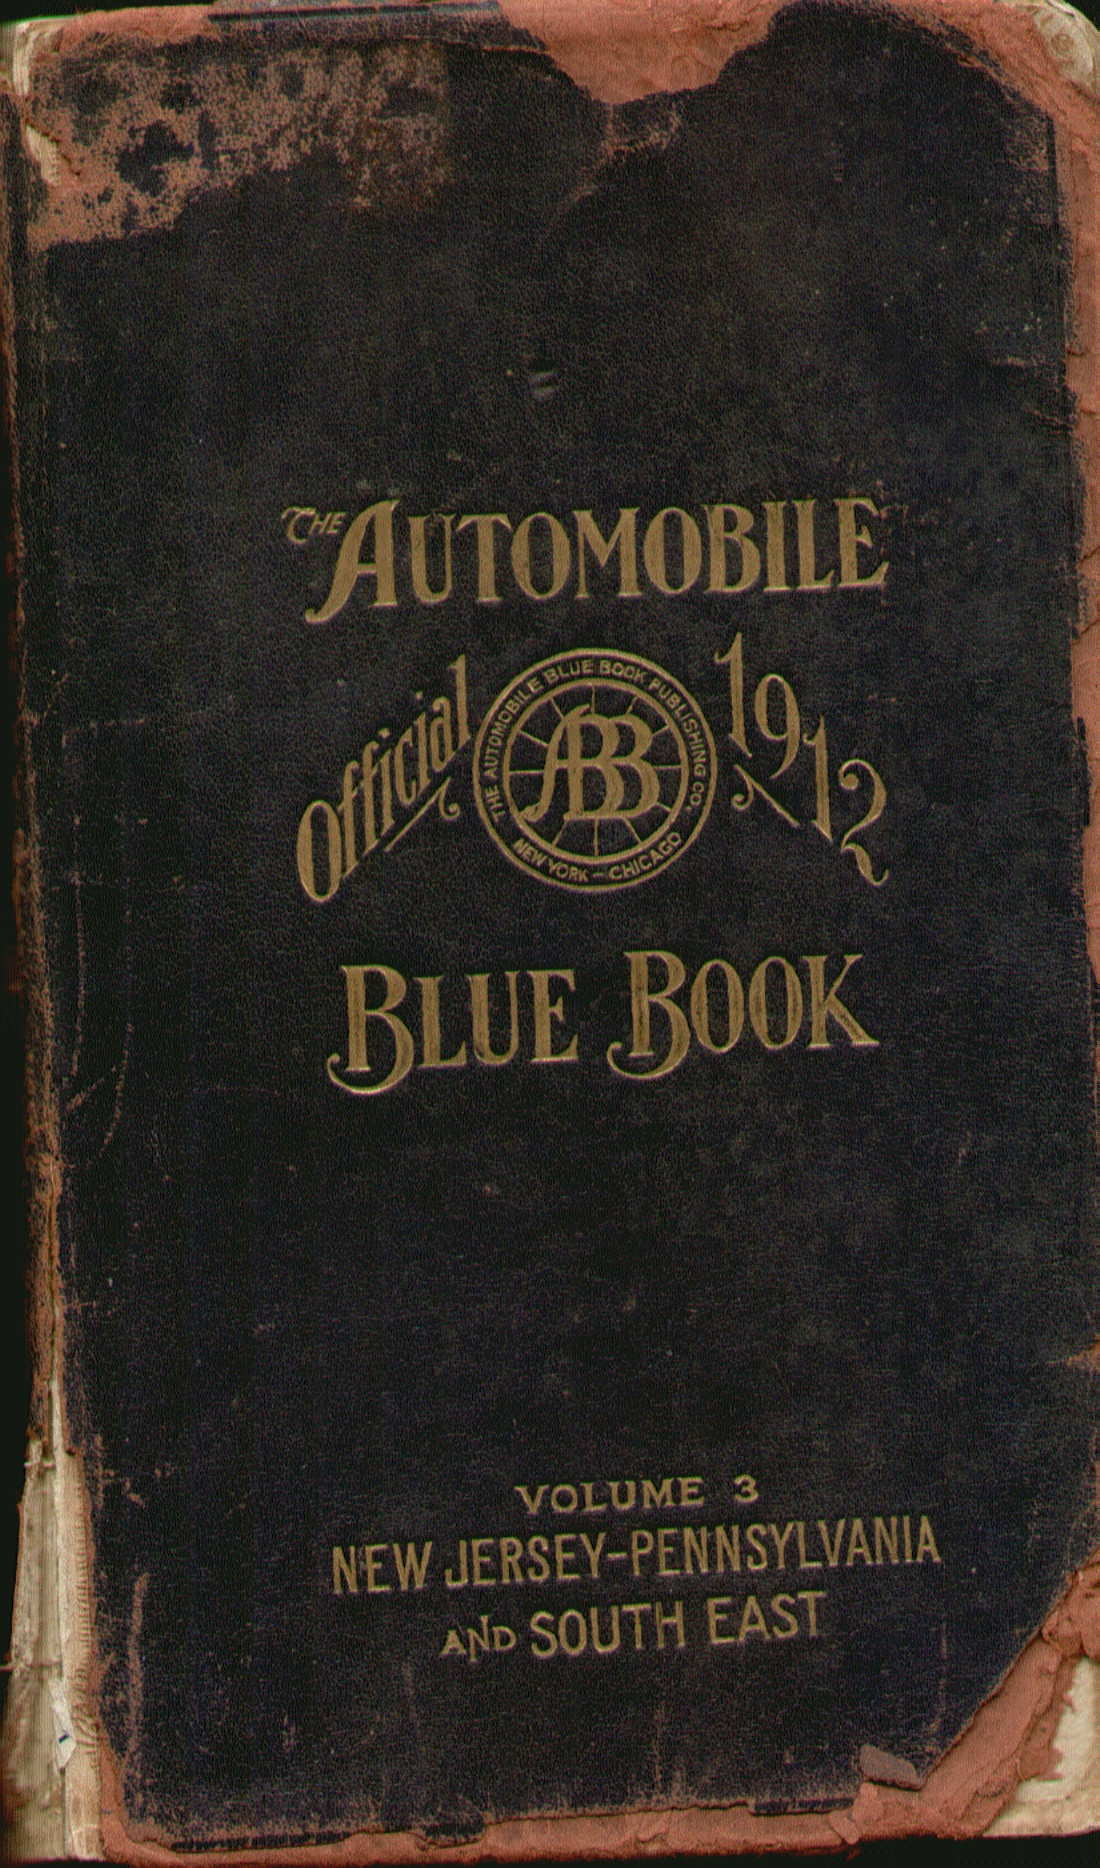 1912 THE AUTOMOBILE OFFICIAL 1912 BLUE BOOK , Volume 3 New Jersey - Pennsylvania and South East. Published by the Automobile Blue Book Publishing Co.